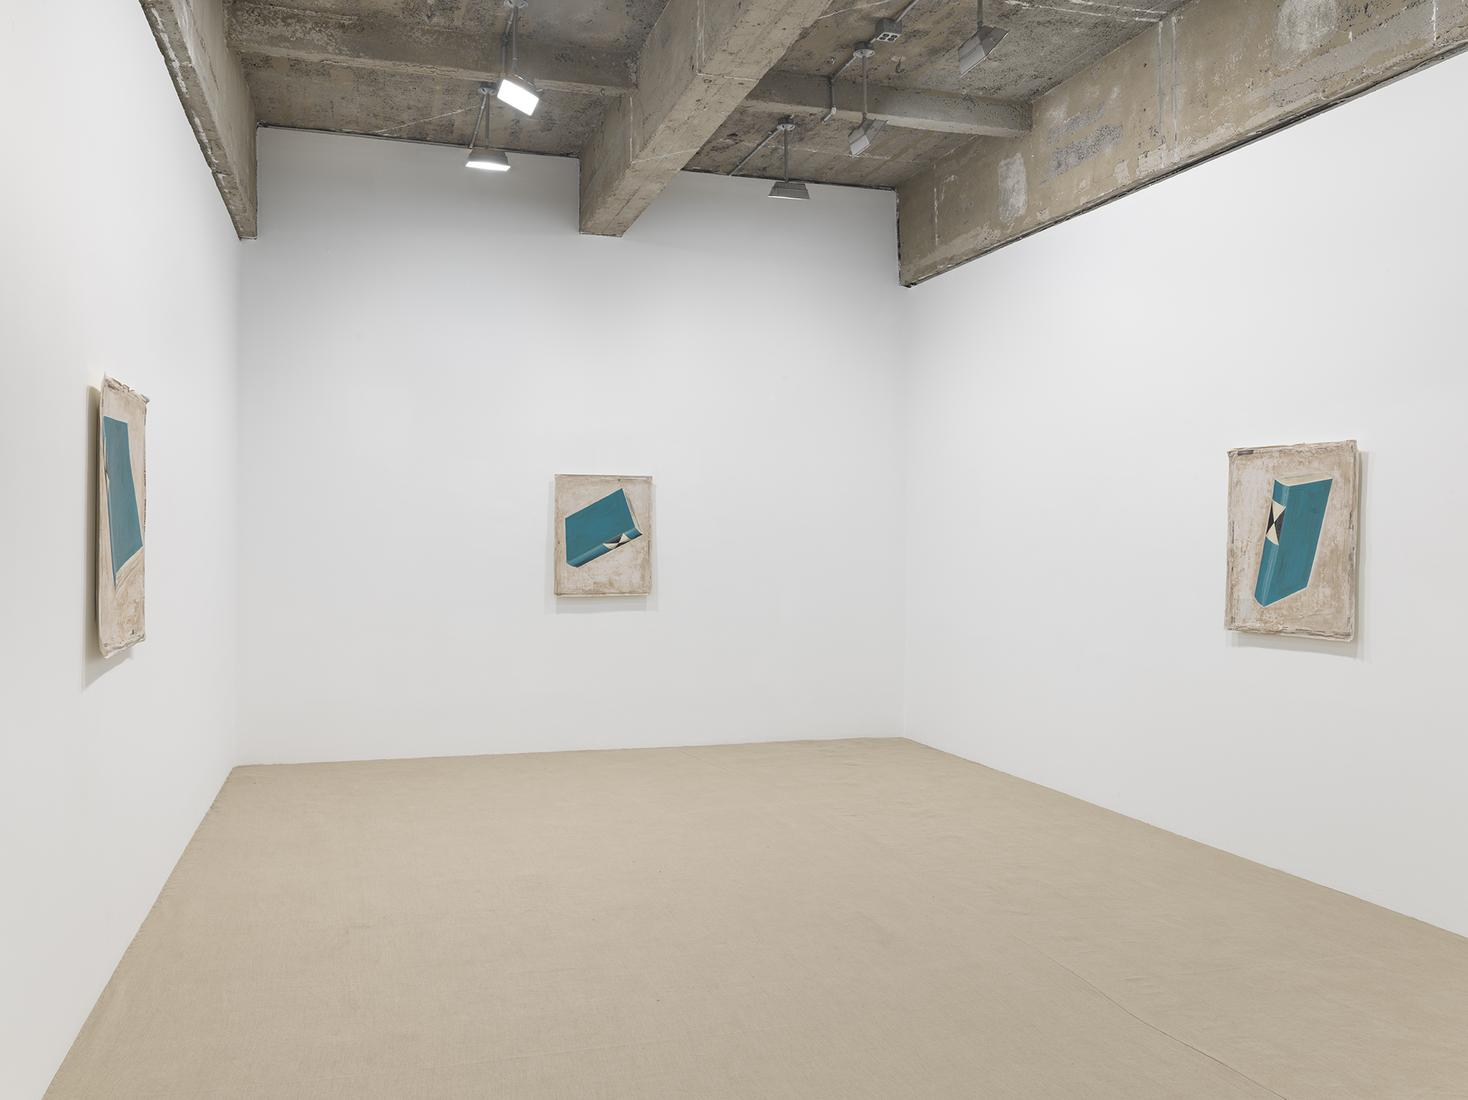 Mark MANDERS Small Room with Three Dead Birds and...